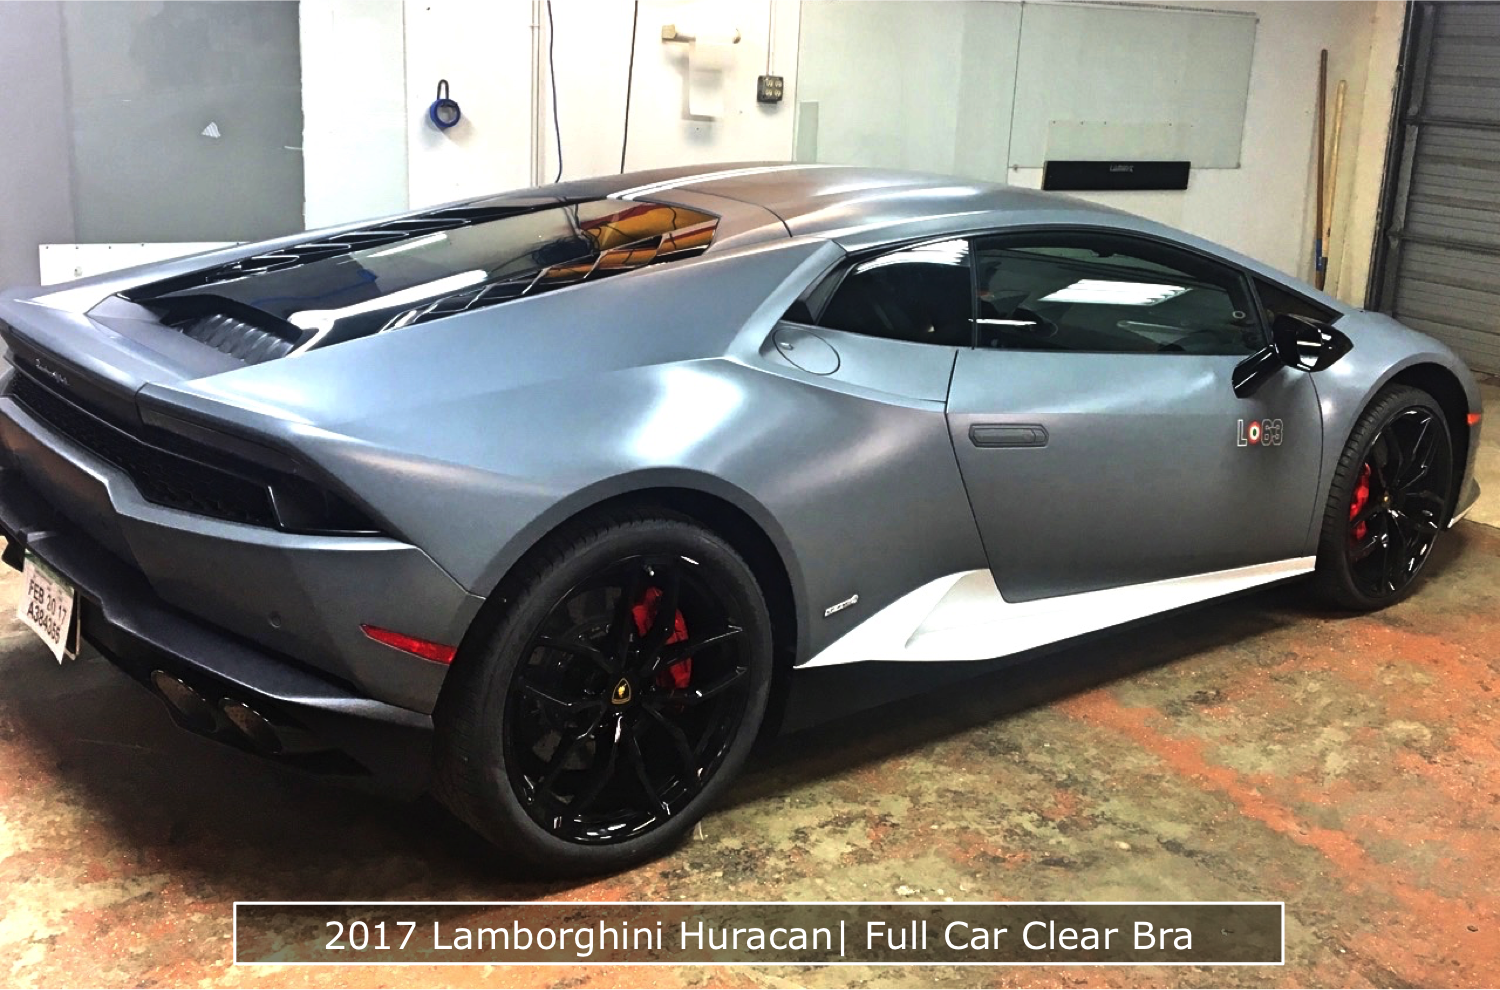 Bumper to Bumper Clear Bra On A 2017 Lamborghini Huracan